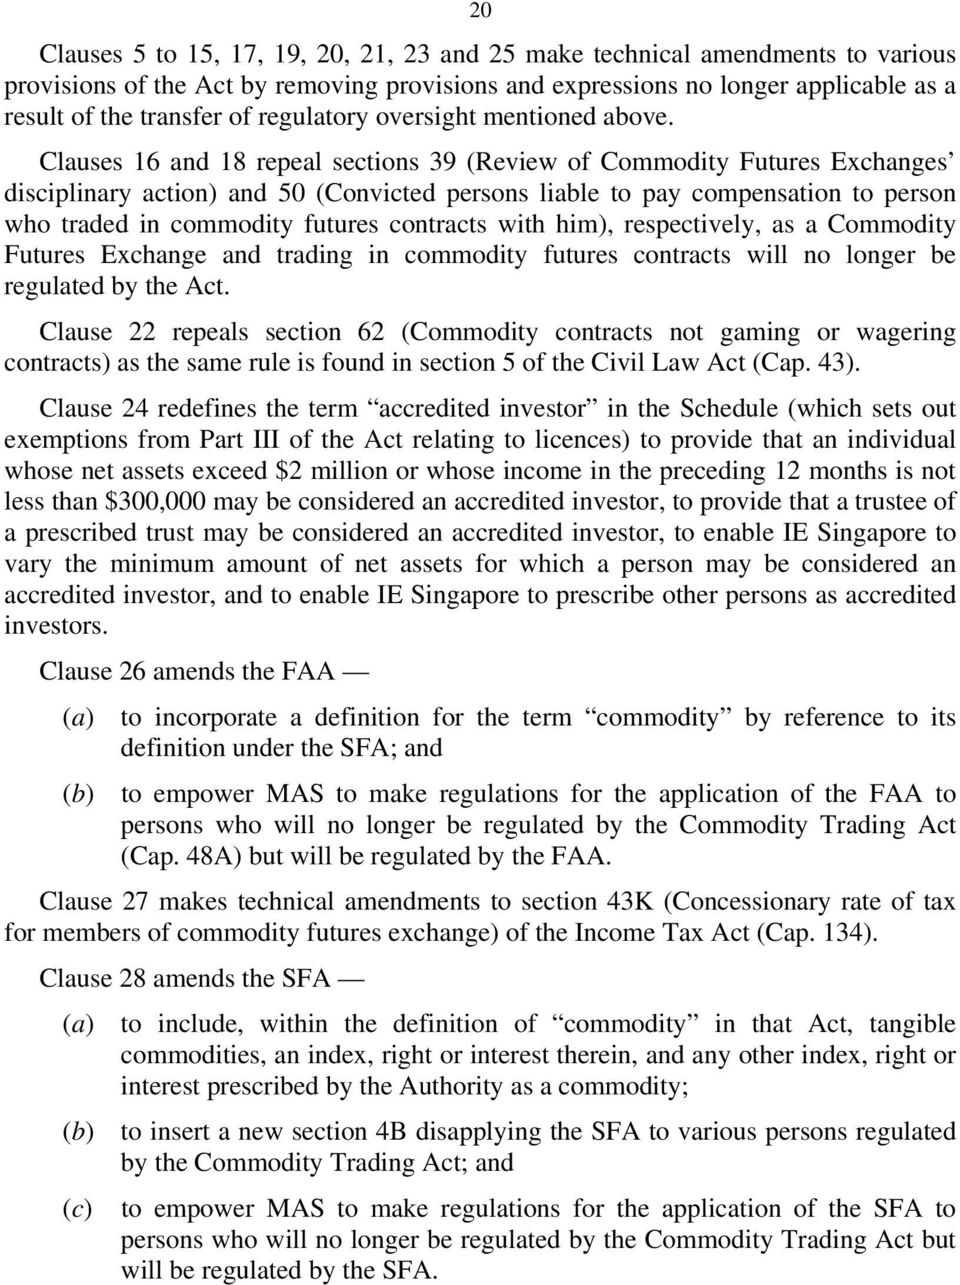 Clauses 16 and 18 repeal sections 39 (Review of Commodity Futures Exchanges disciplinary action) and 50 (Convicted persons liable to pay compensation to person who traded in commodity futures